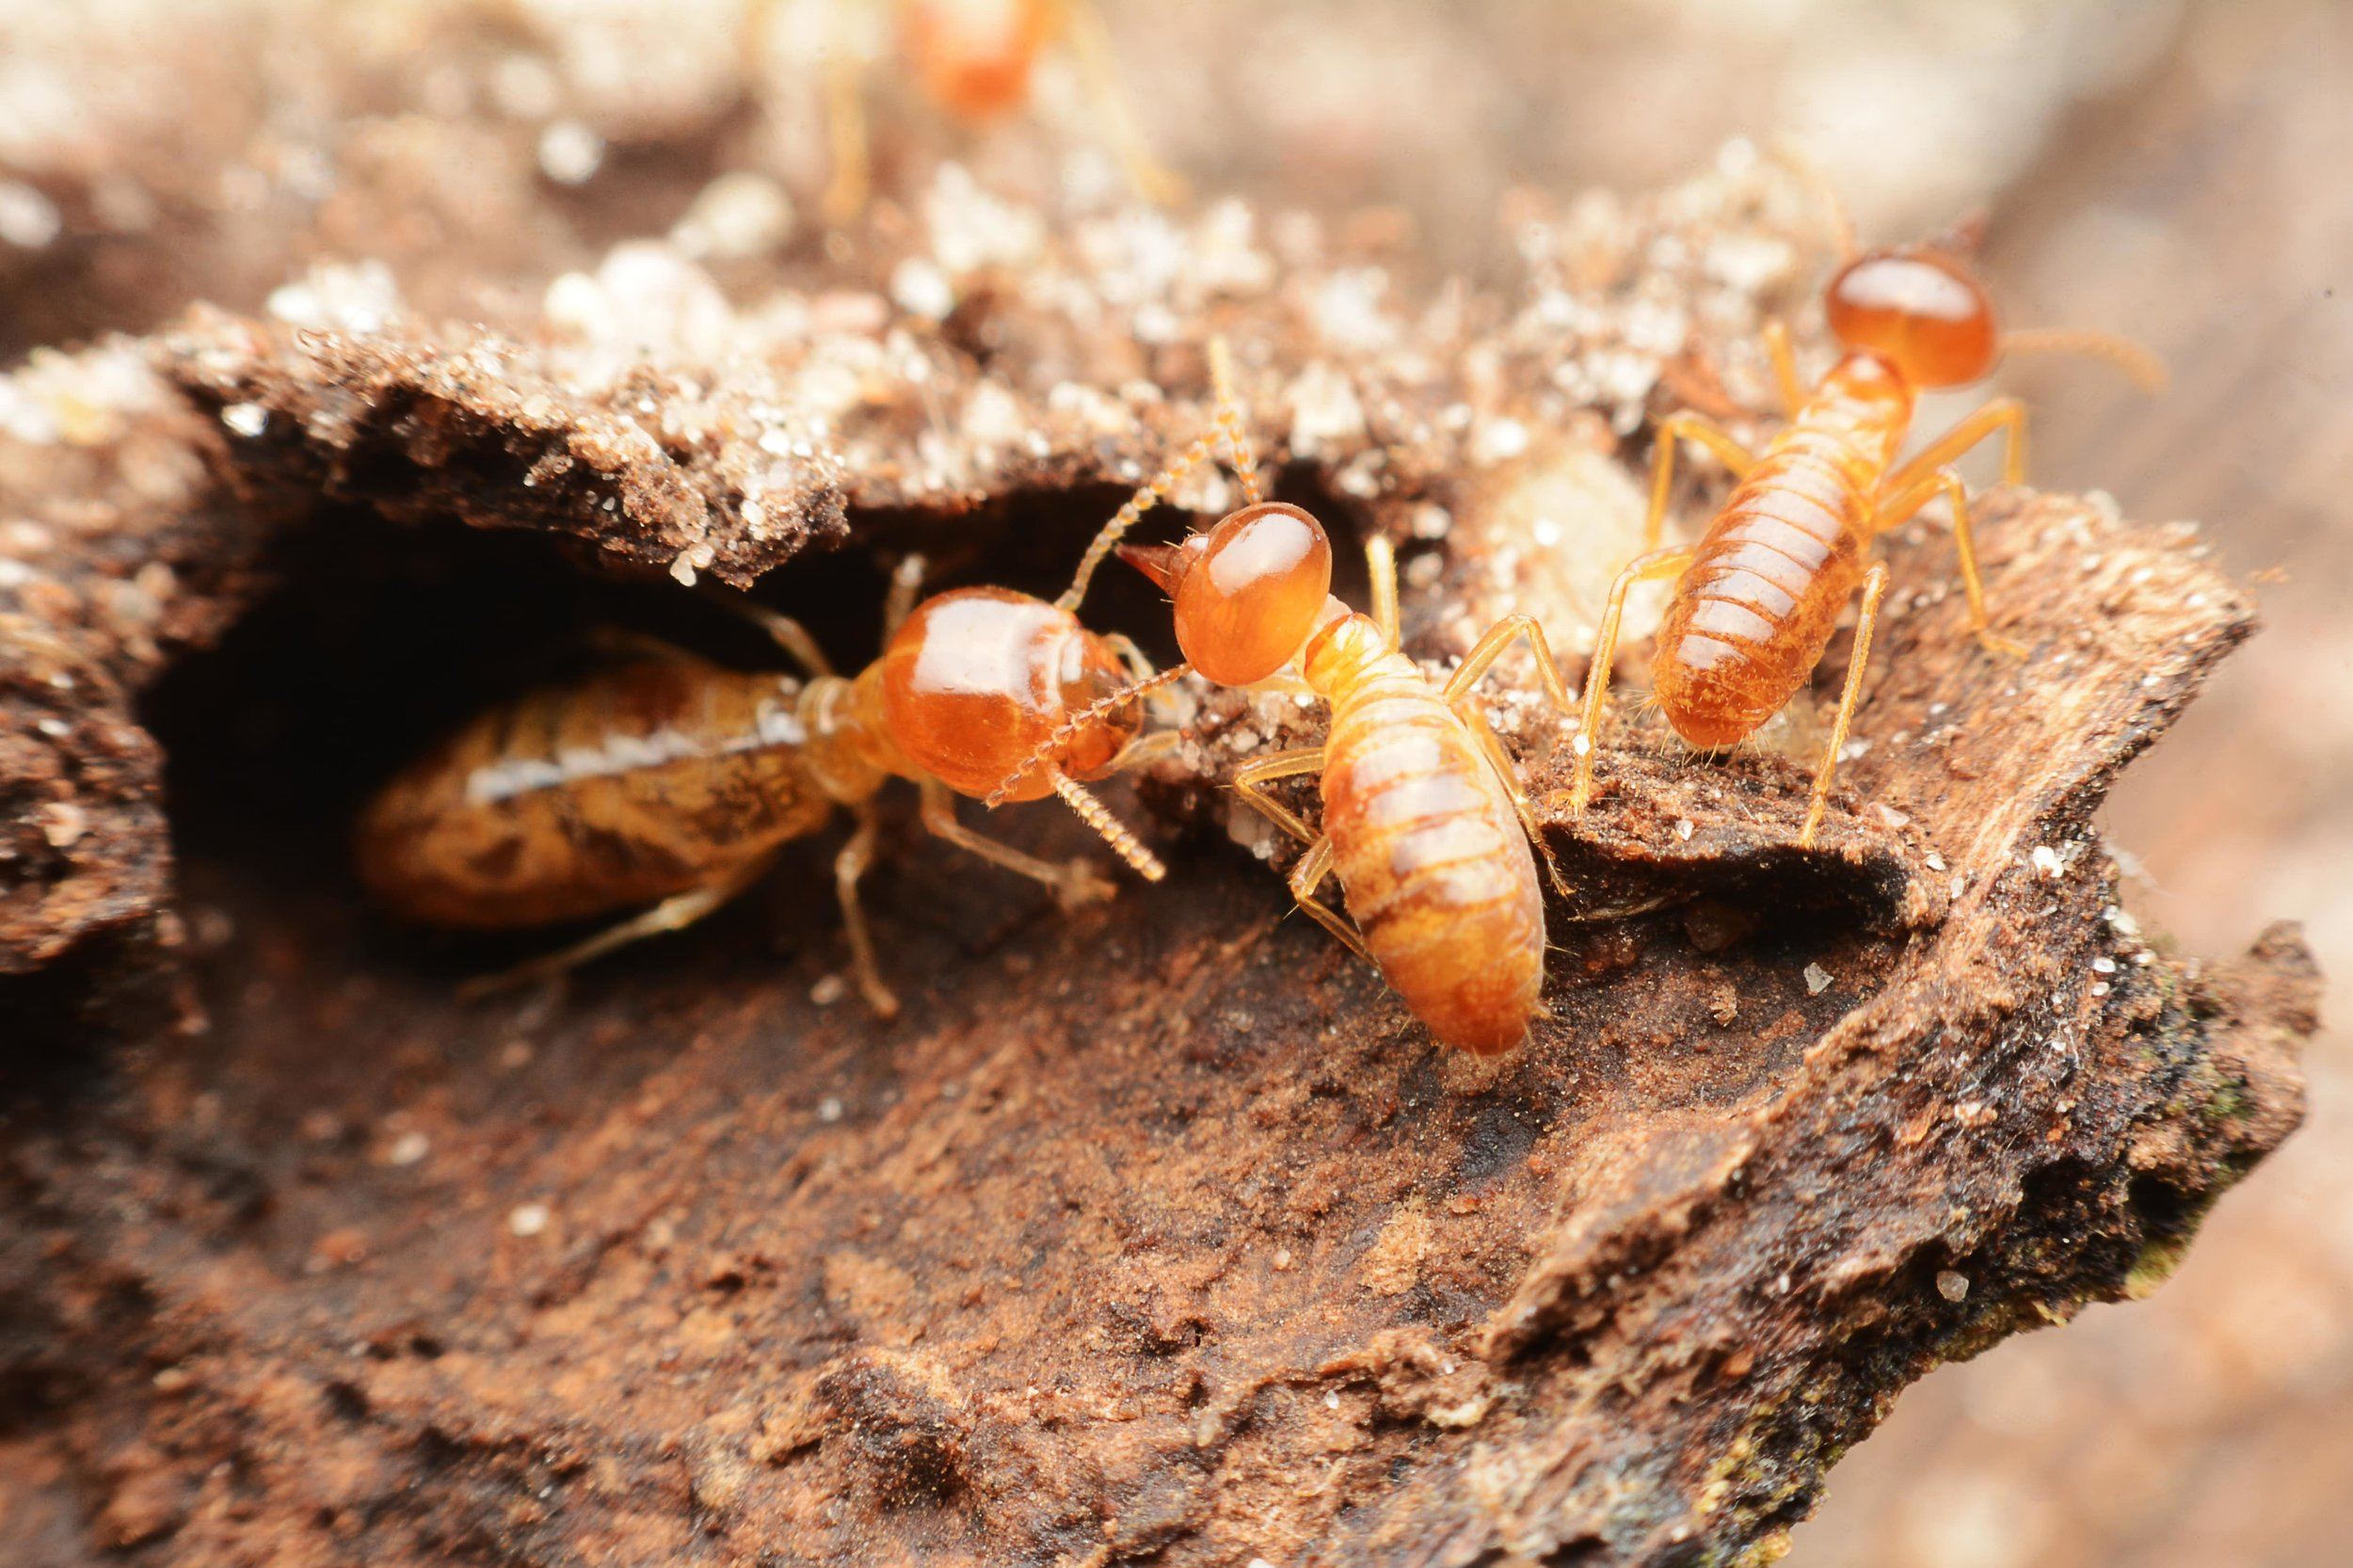 Termites live to eat wood and are the most destructive of these wood-boring insects.